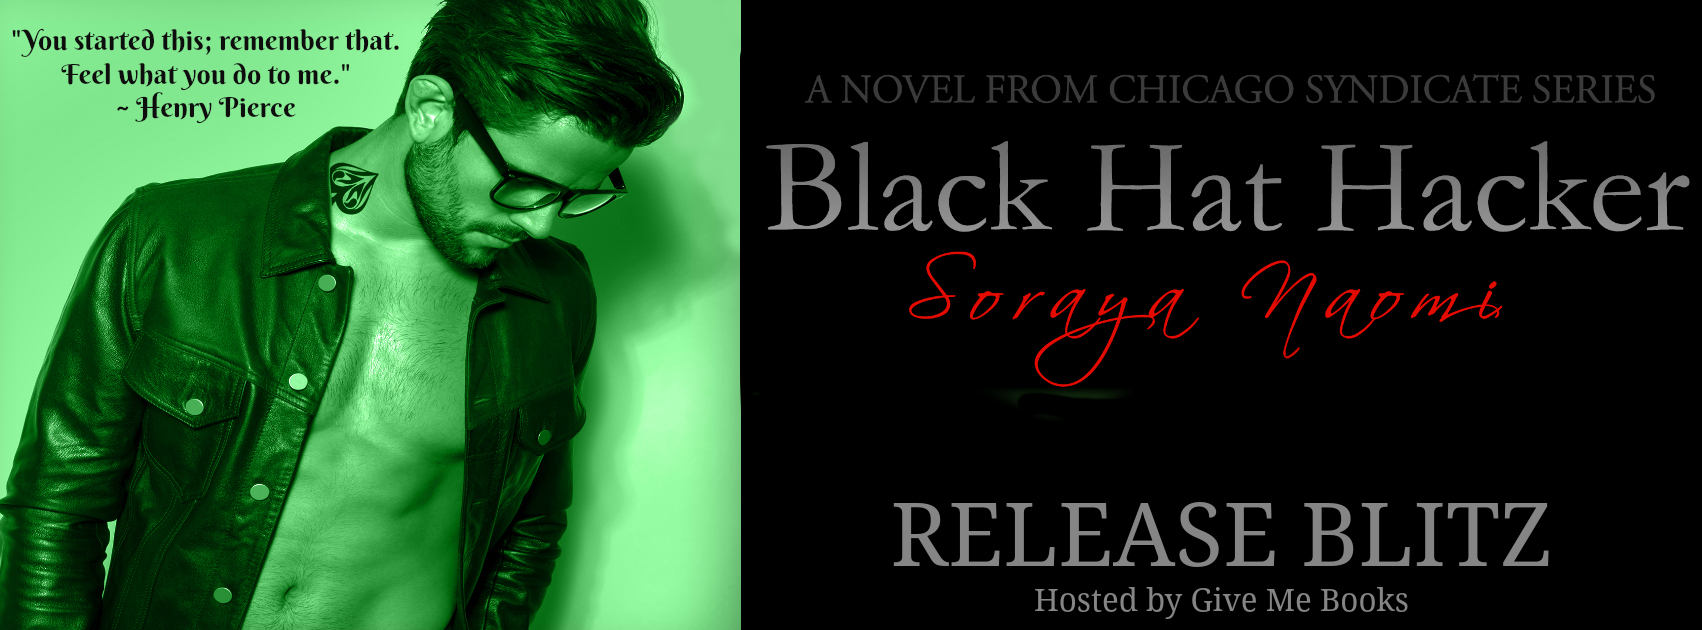 RELEASE BLITZ & GIVEAWAY: BLACK HAT HACKER by Soraya Naomi